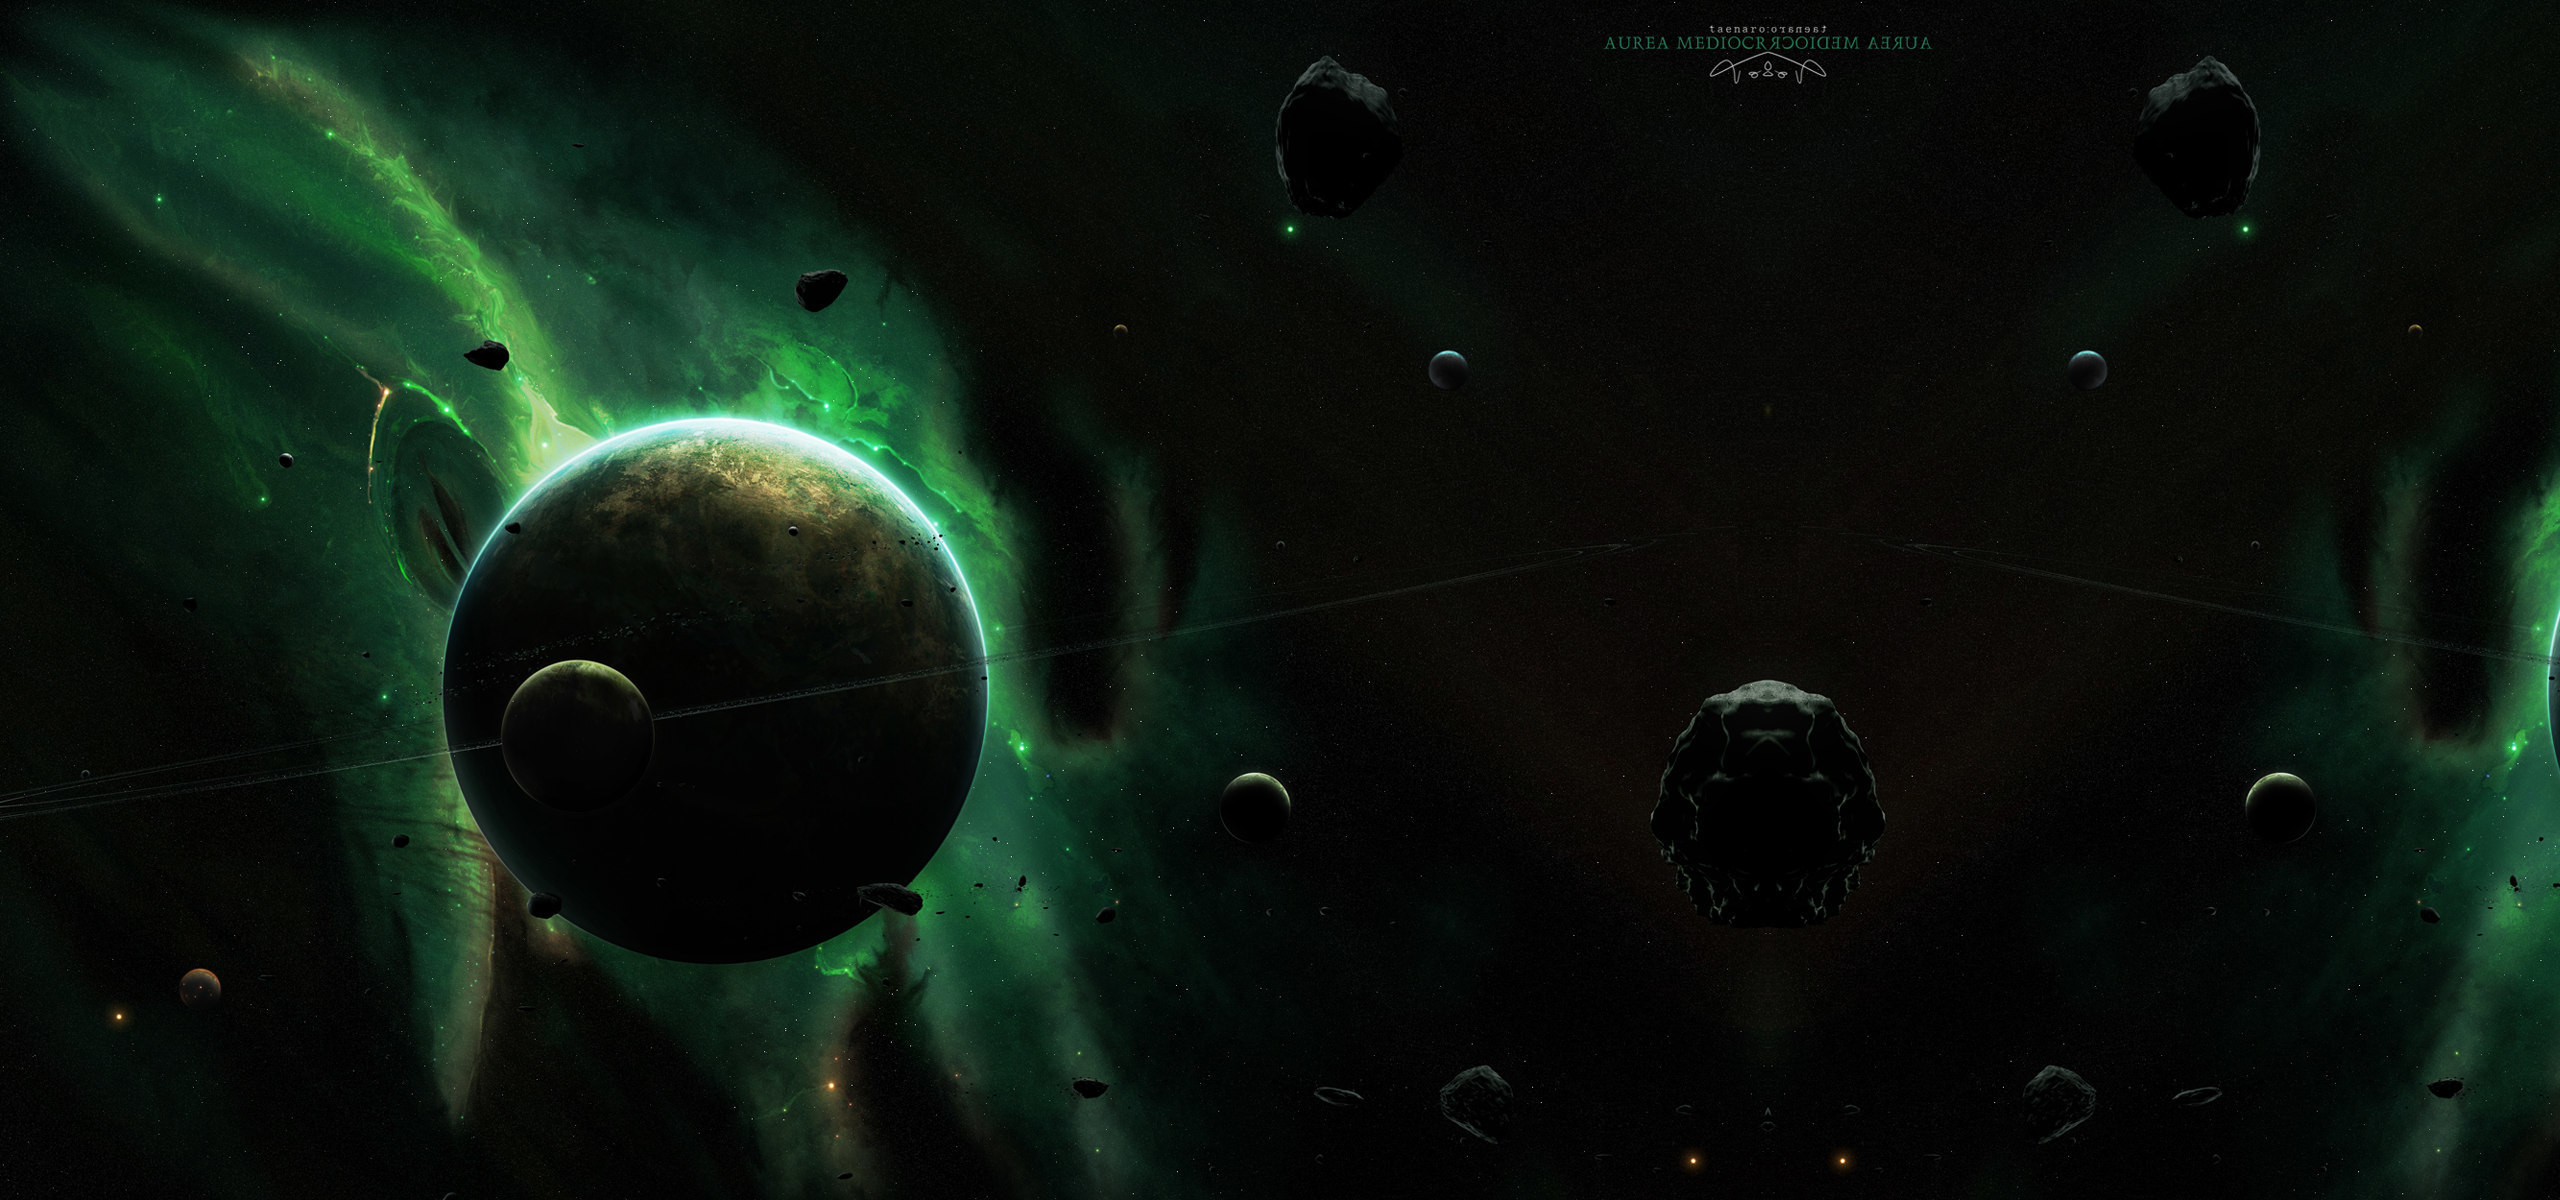 Green outer space planets